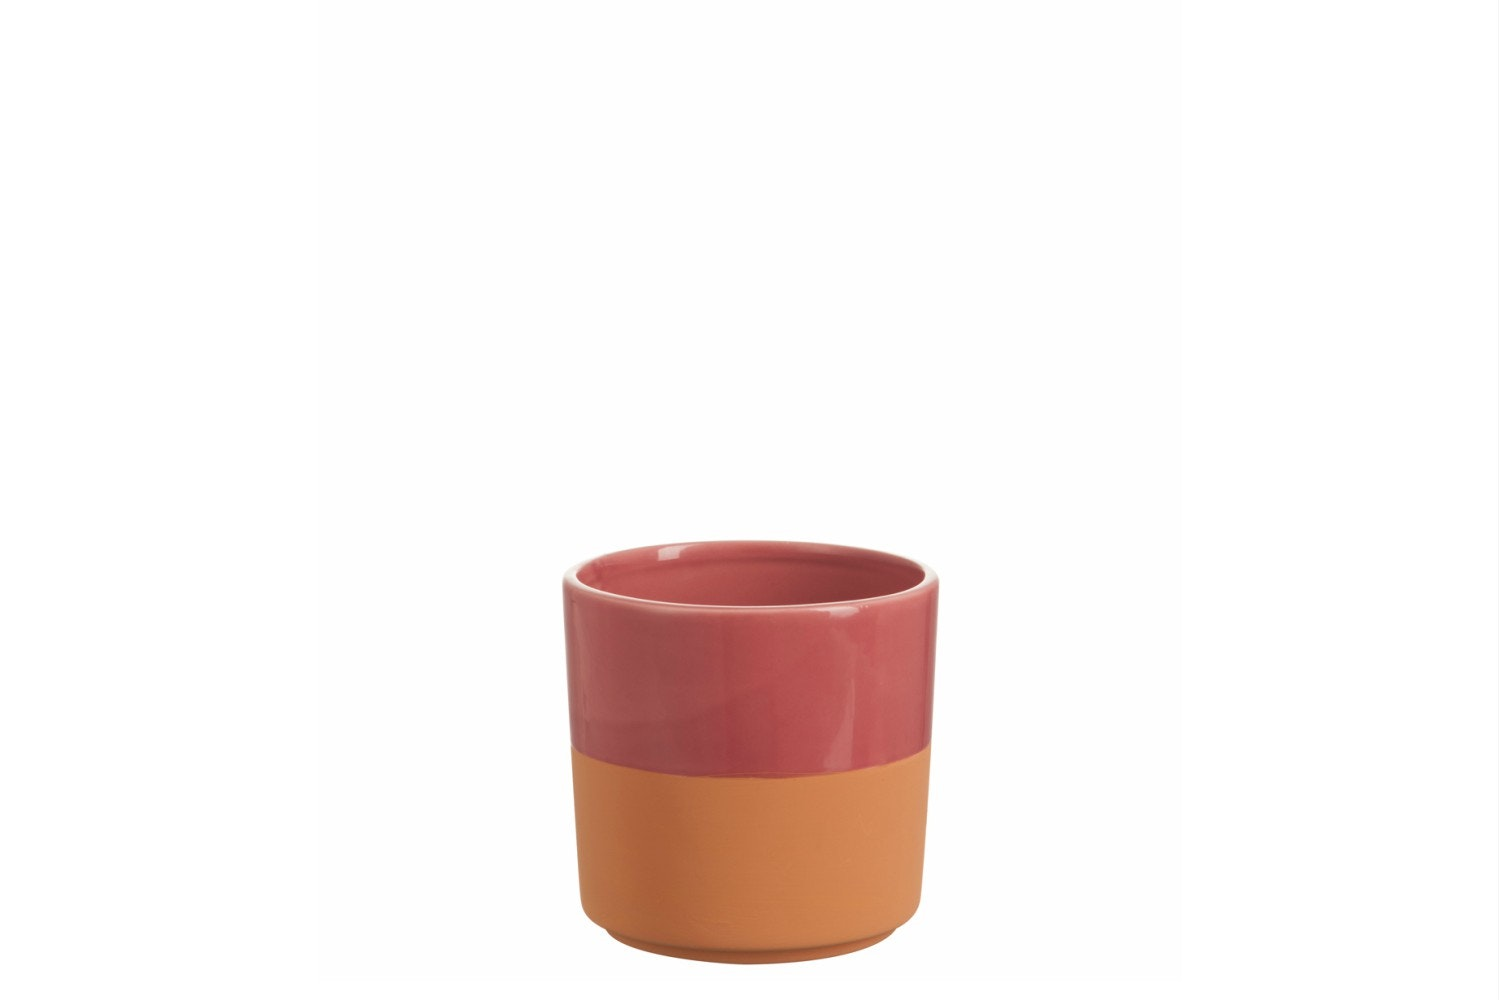 Ceramic Cachepot Round Border in Red | Medium